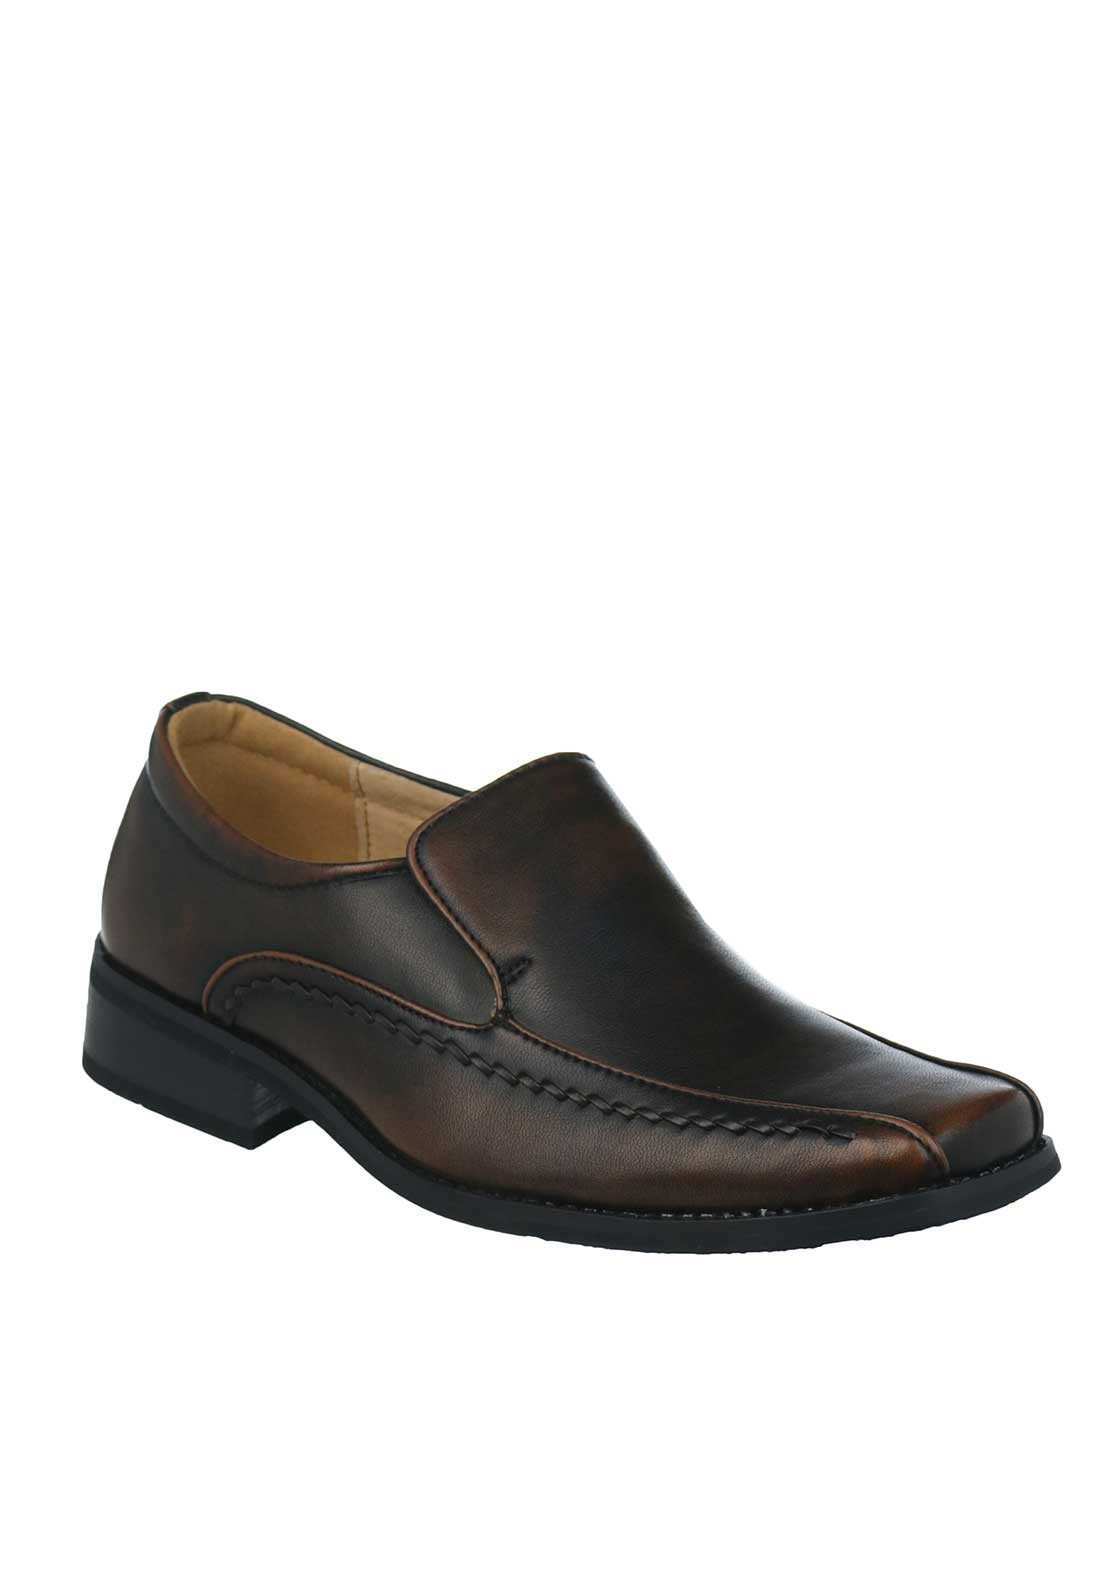 Goor Boys Formal Loafer Shoe, Brown